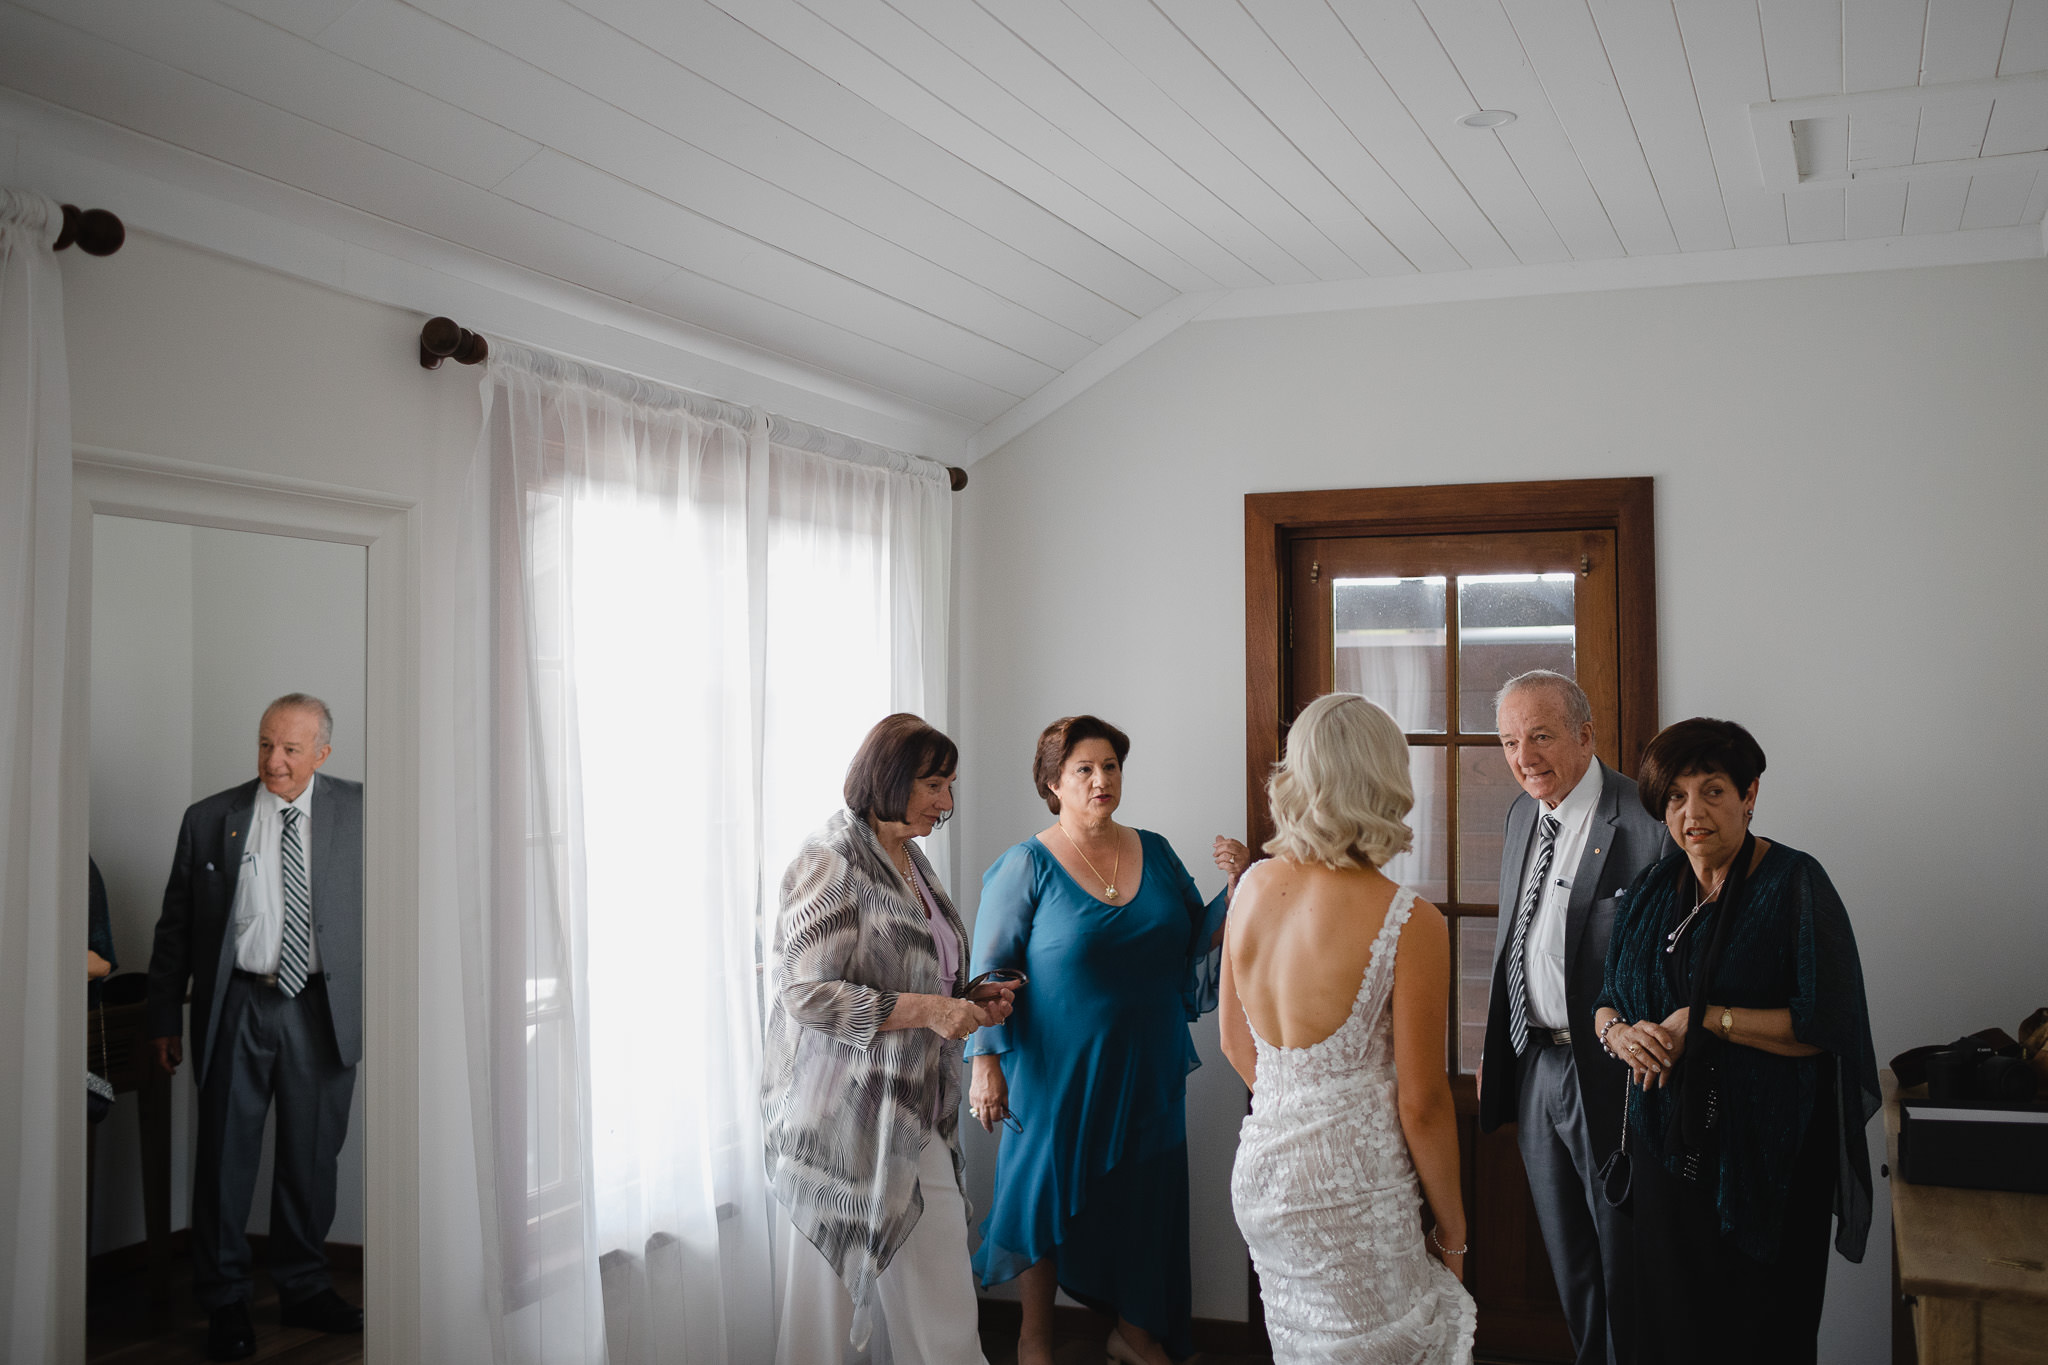 mum and grandparents greeting bride before ceremony, grandfather reflected in the mirror